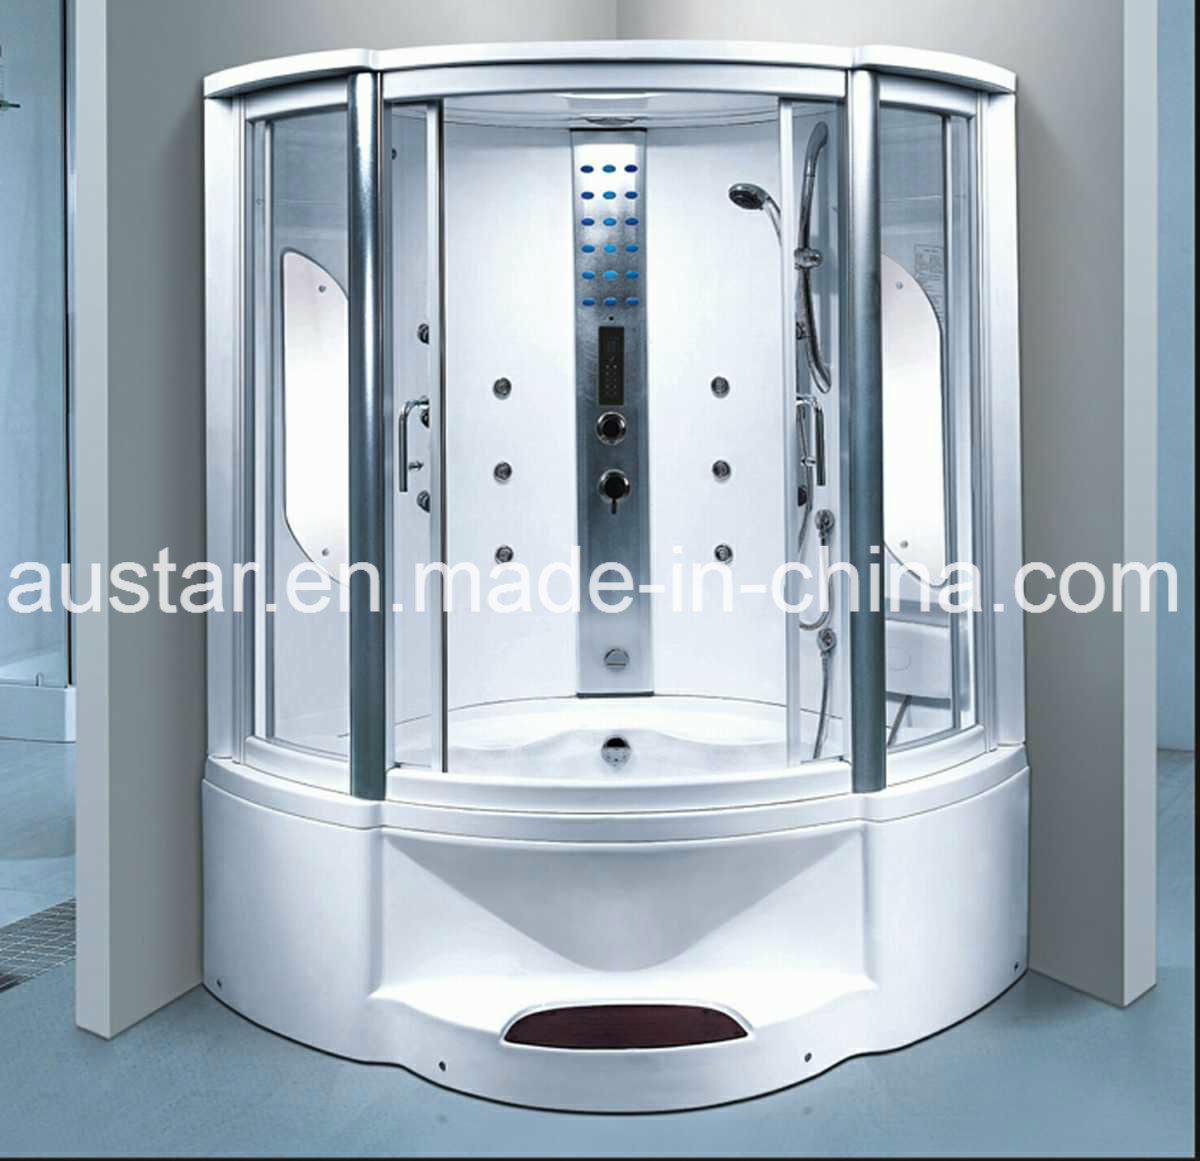 1350mm Sector Steam Sauna with Bathtub and Shower (AT-G8202F)